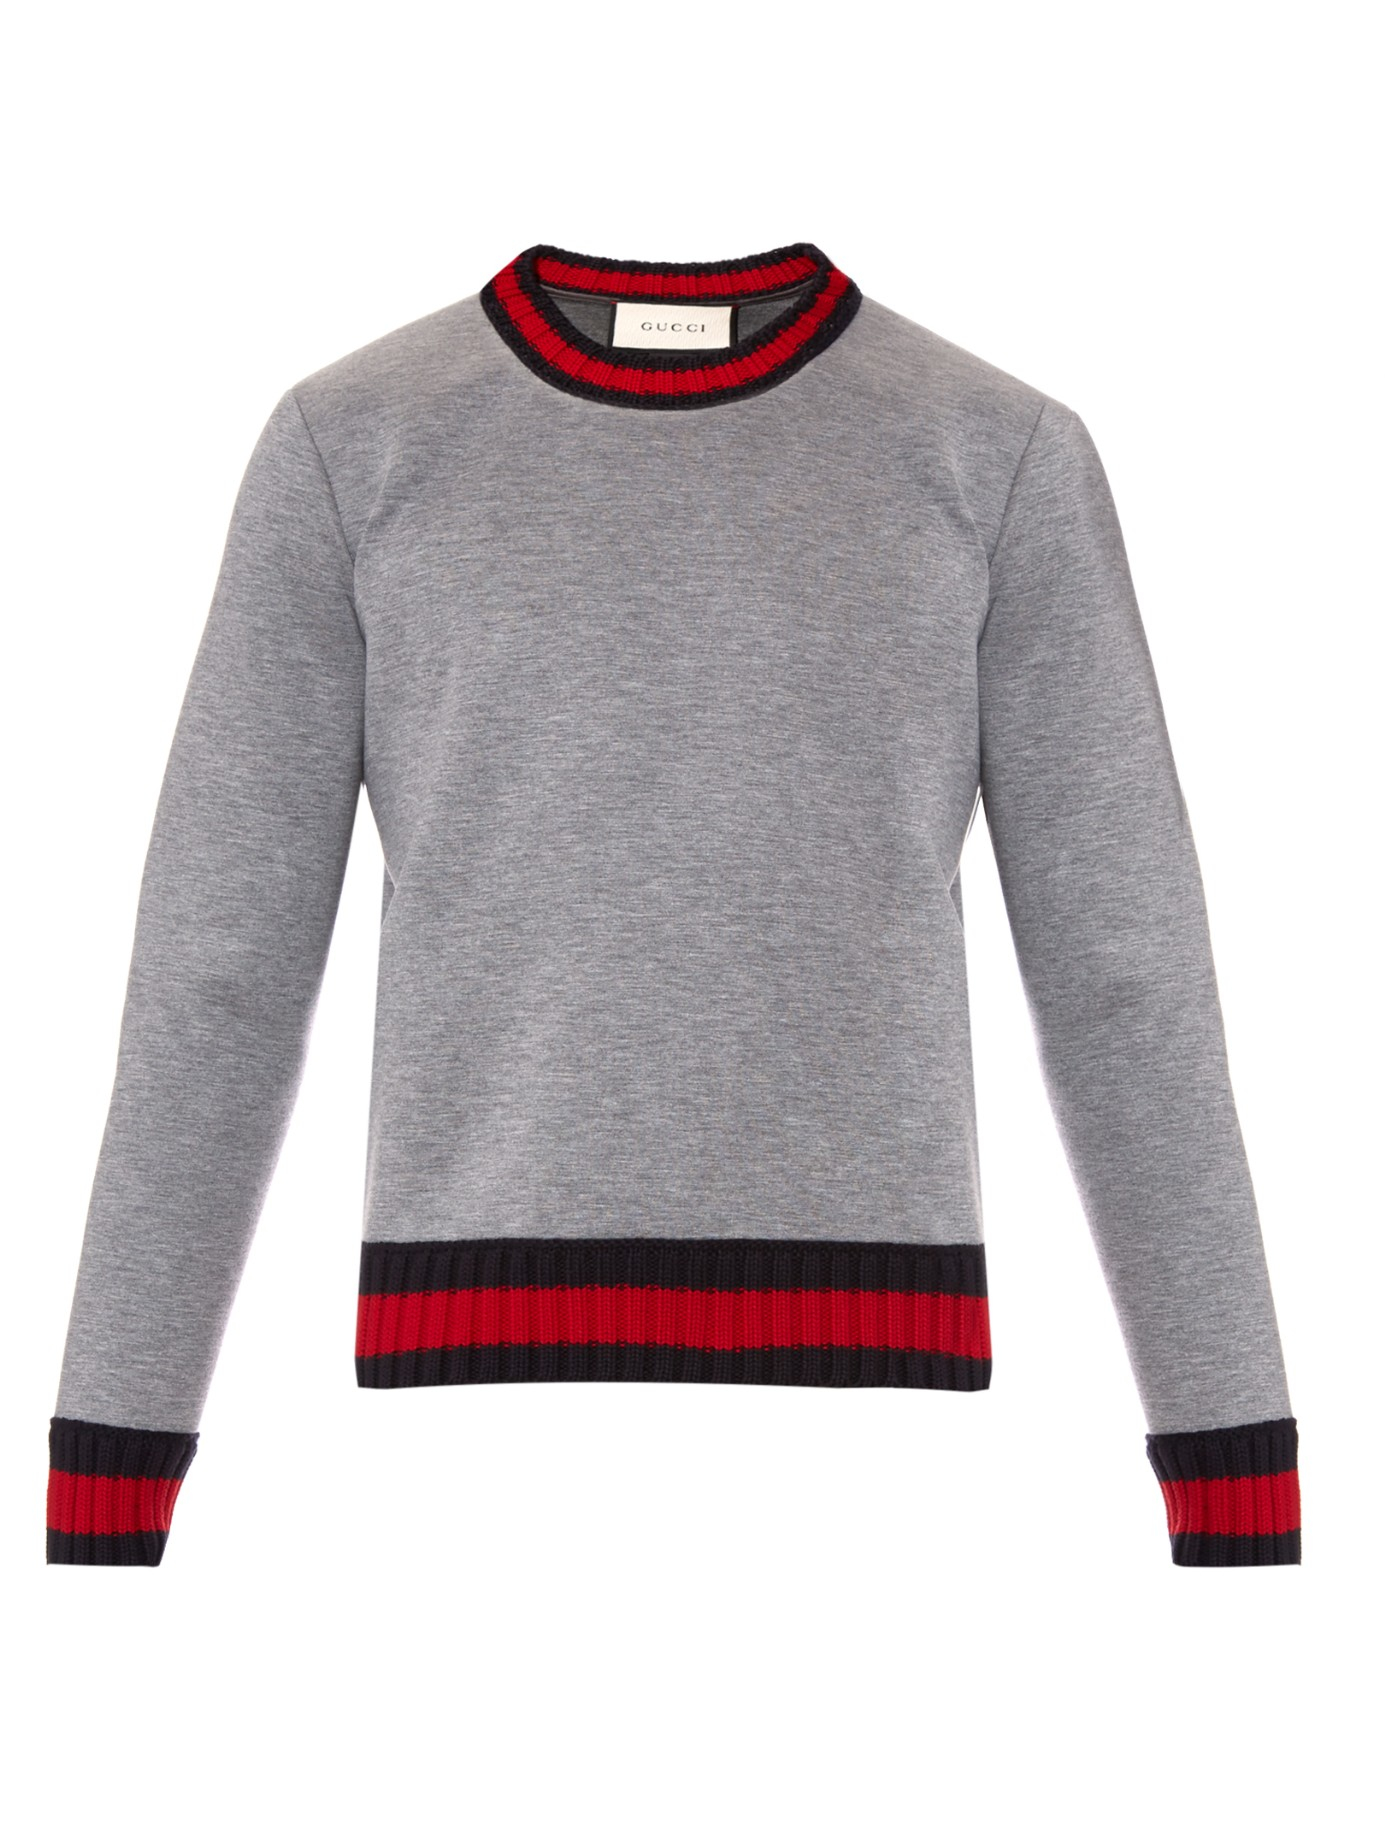 lyst gucci crew neck neoprene sweatshirt in gray for men. Black Bedroom Furniture Sets. Home Design Ideas